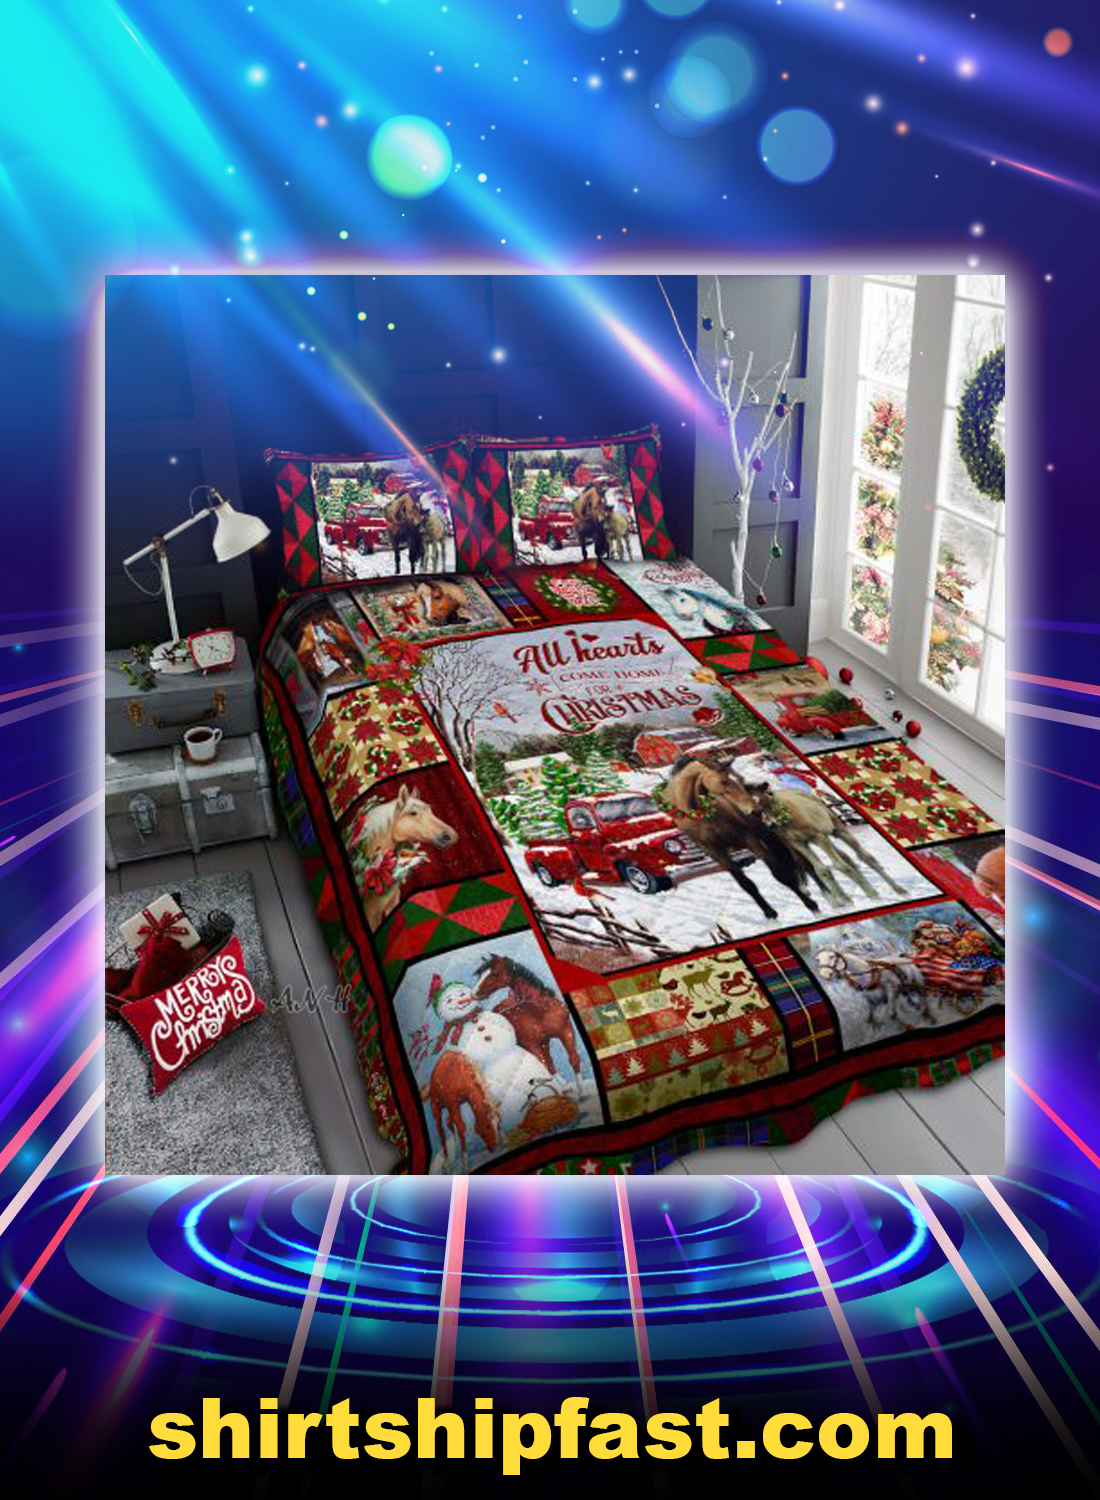 Horse all hearts come home for christmas bed set - Picture 1